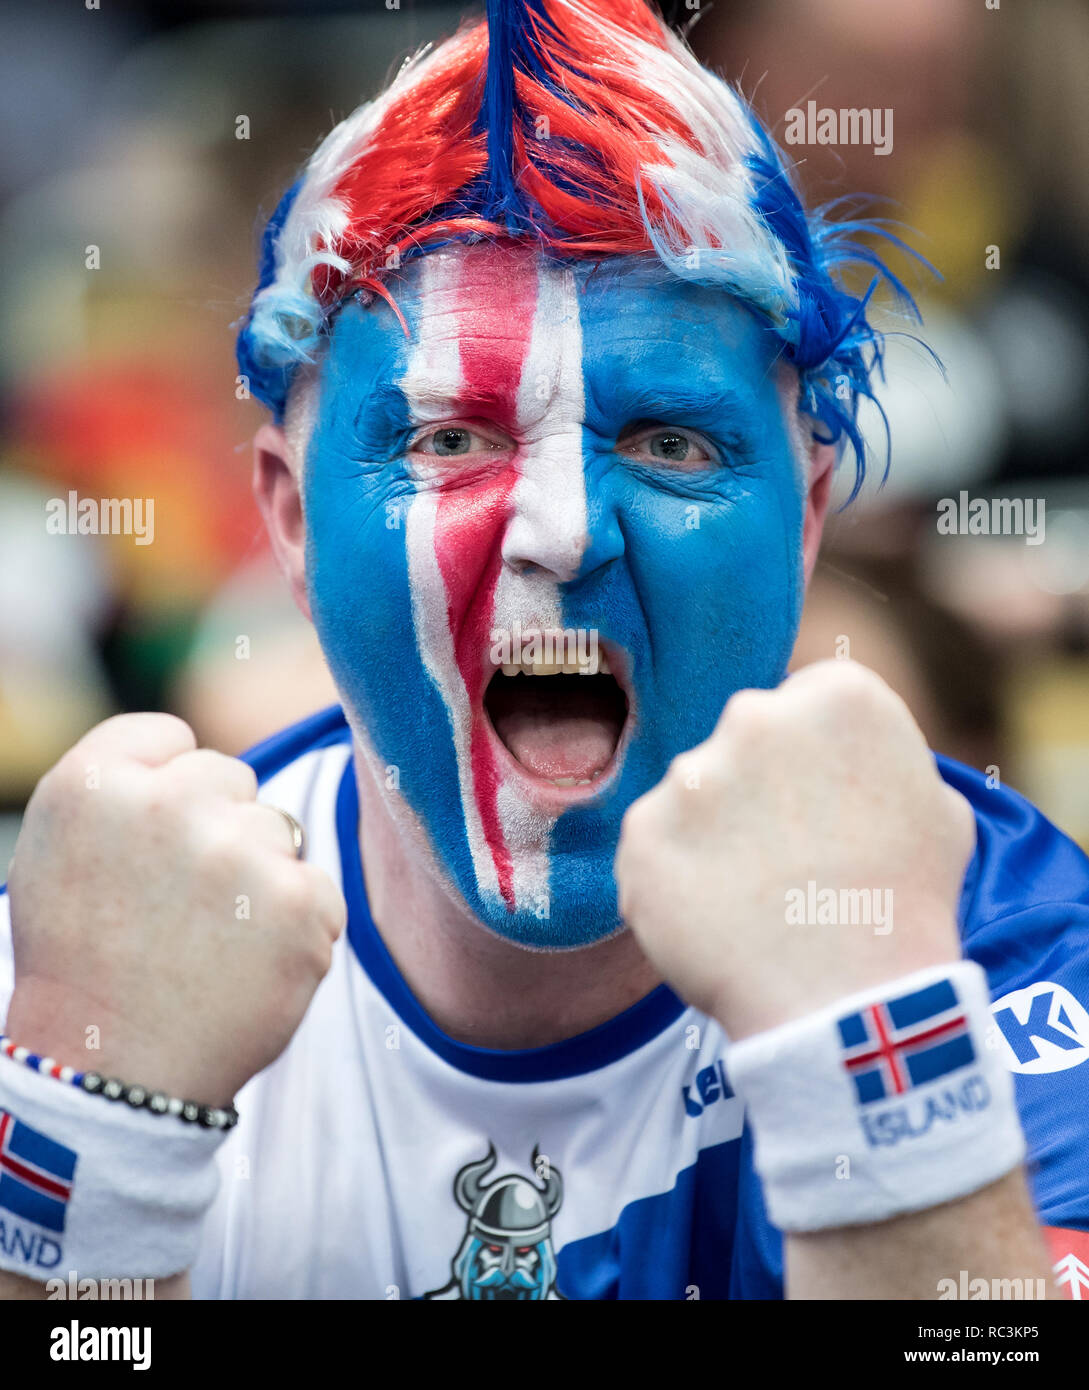 Munich, Germany. 13th Janaury 2019. Handball: World Championship, Spain - Iceland, preliminary round, Group B, 2nd matchday in the Olympic Hall. Fans from Iceland come to the hall before the game. Photo: Sven Hoppe/dpa Credit: dpa picture alliance/Alamy Live News - Stock Image